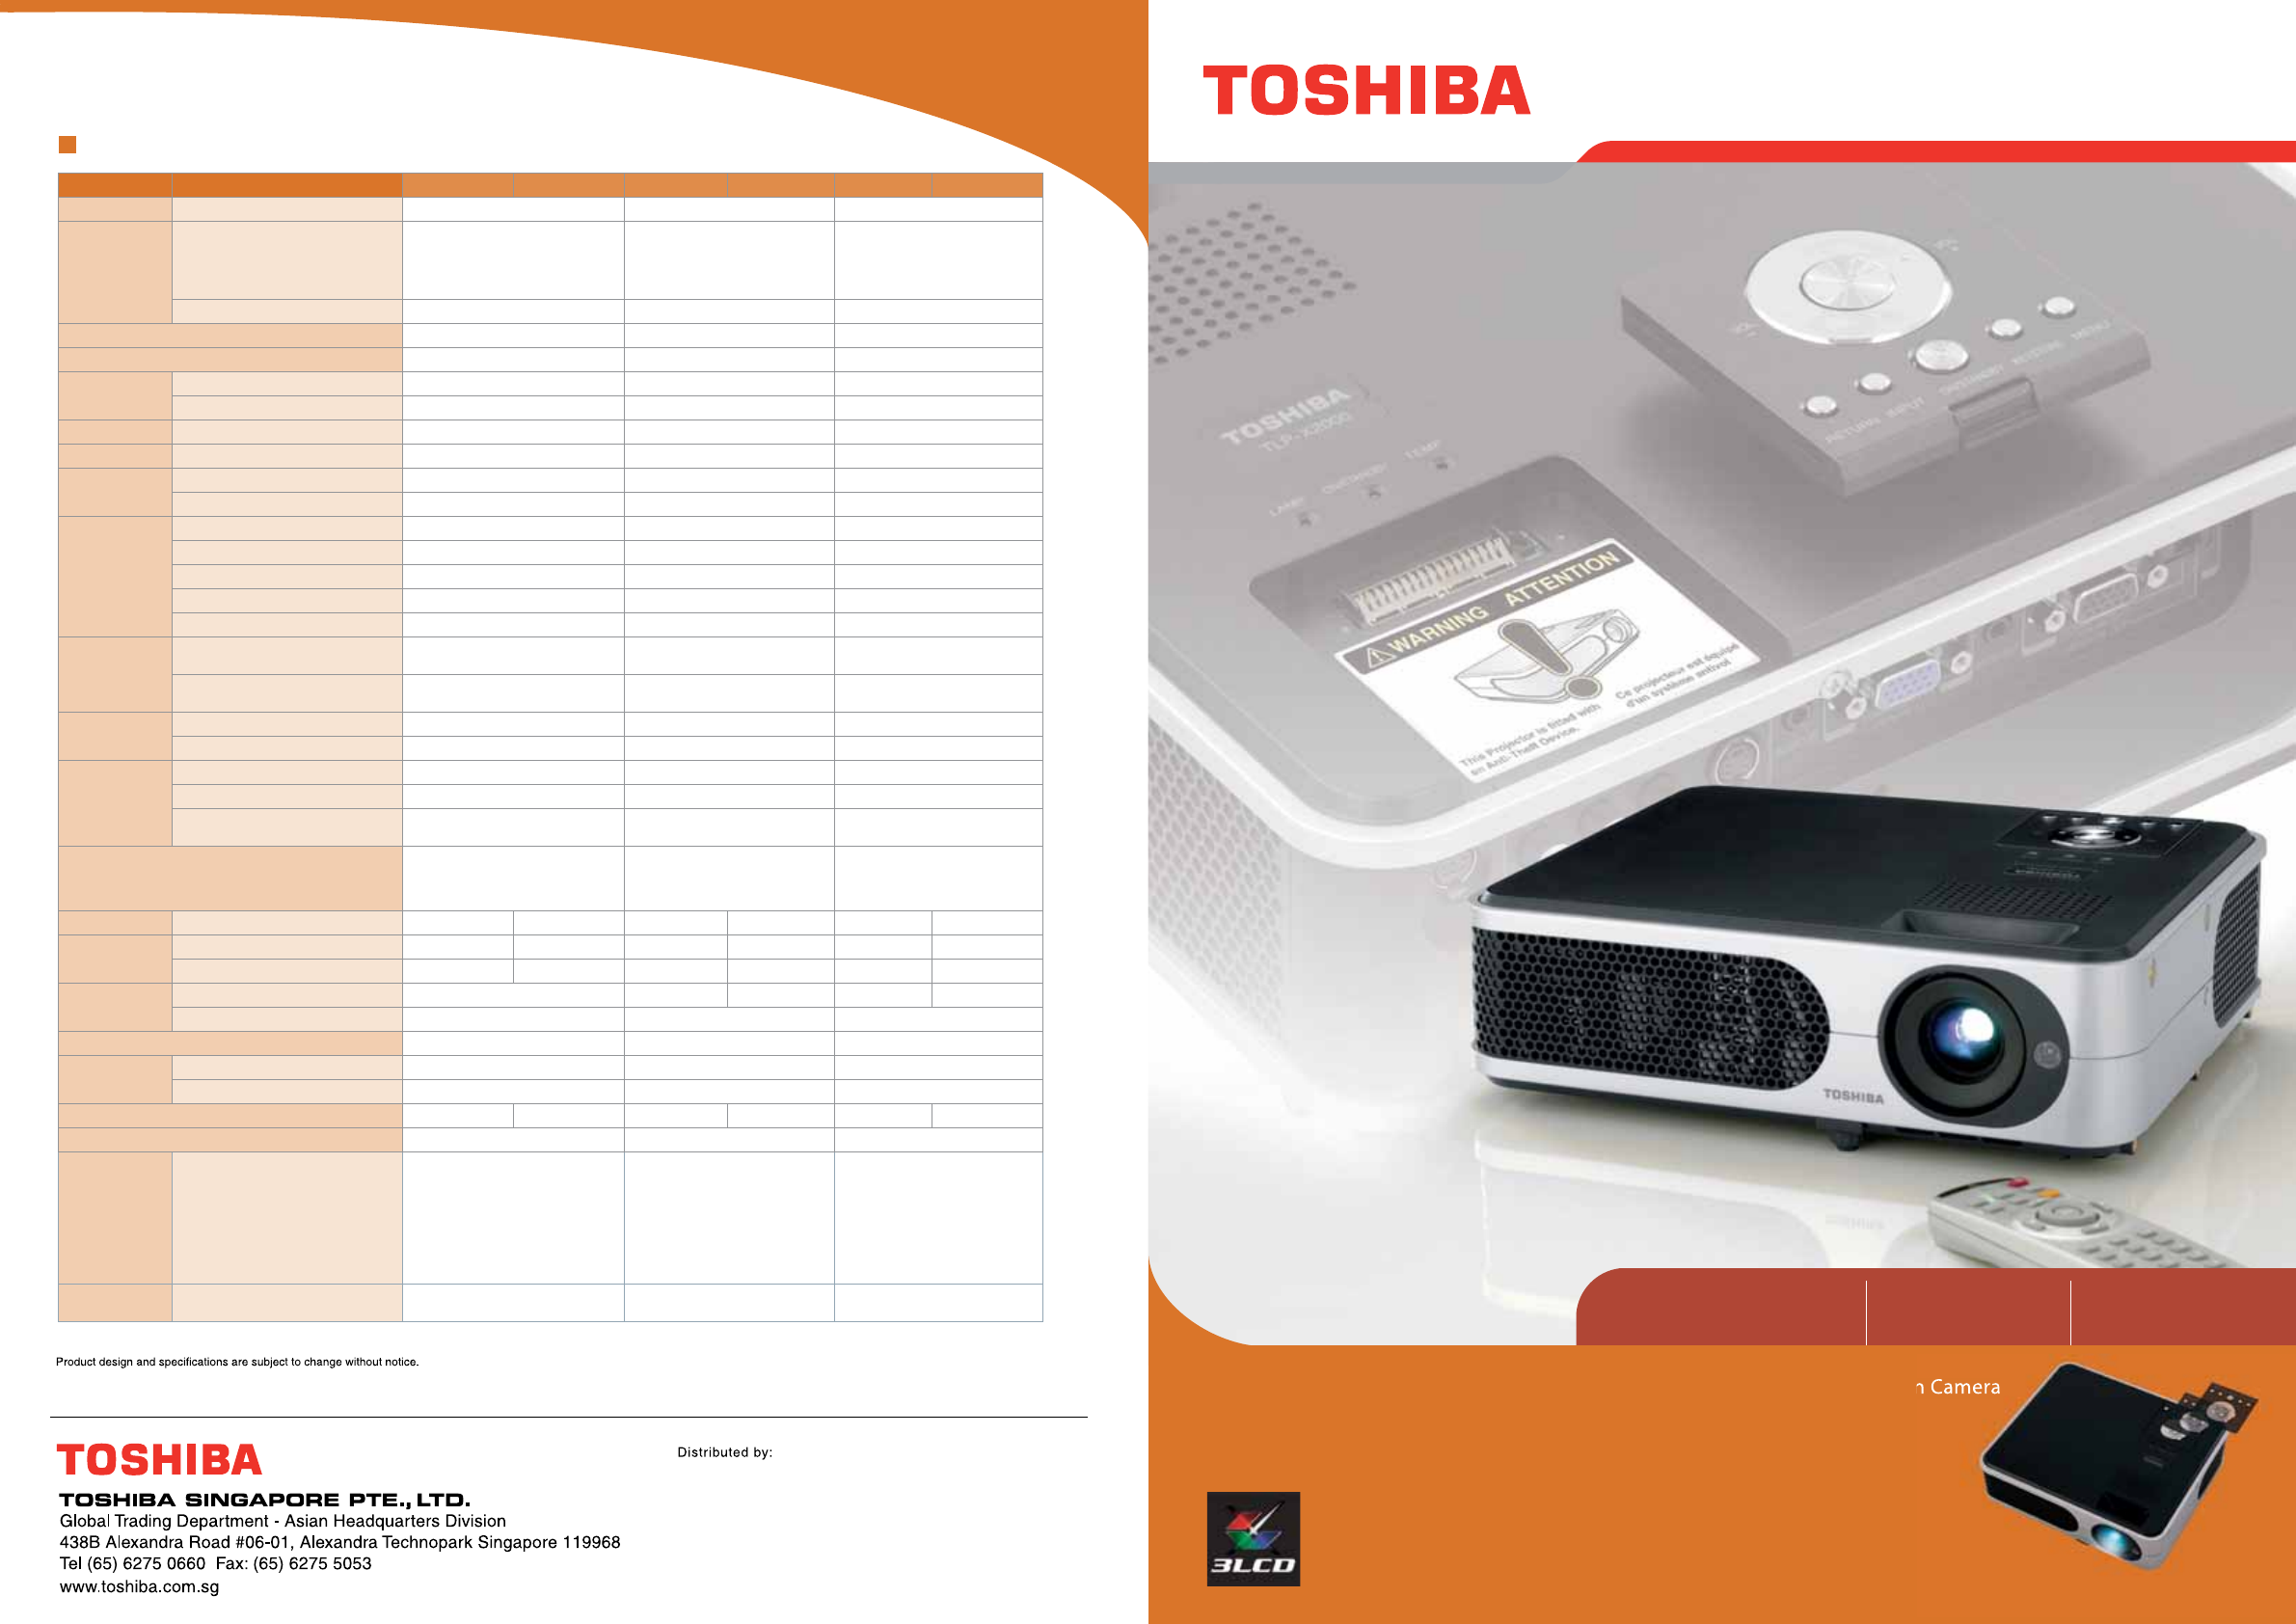 toshiba projector tlp xc3000 user guide manualsonline com rh manualsonline com Hitachi LCD Projector panasonic lcd projector user manual